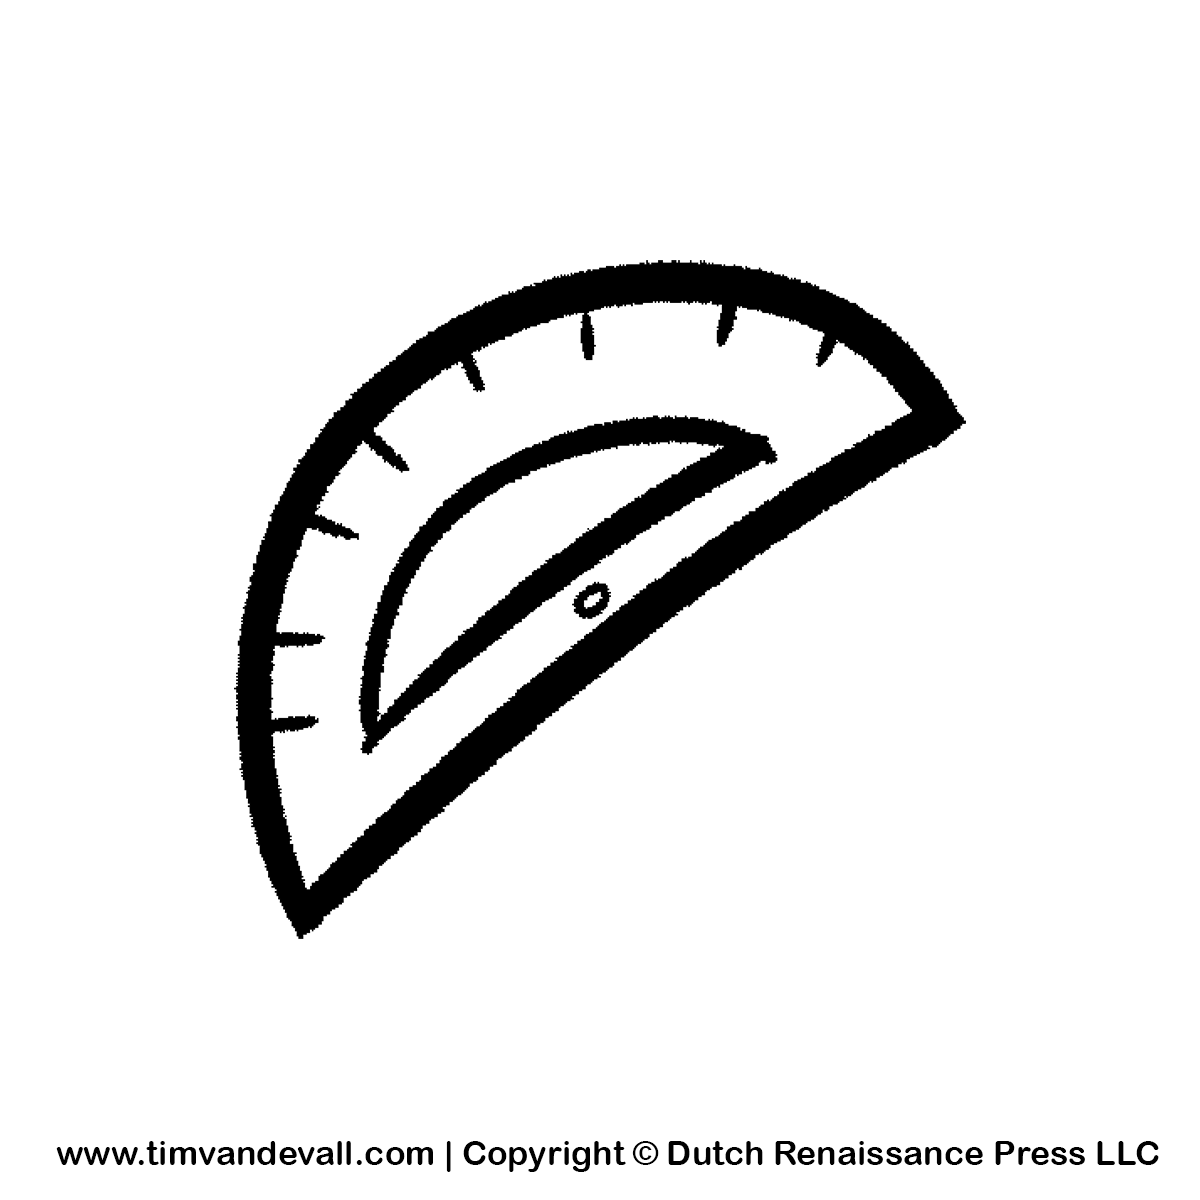 Protractor clipart - Clipground